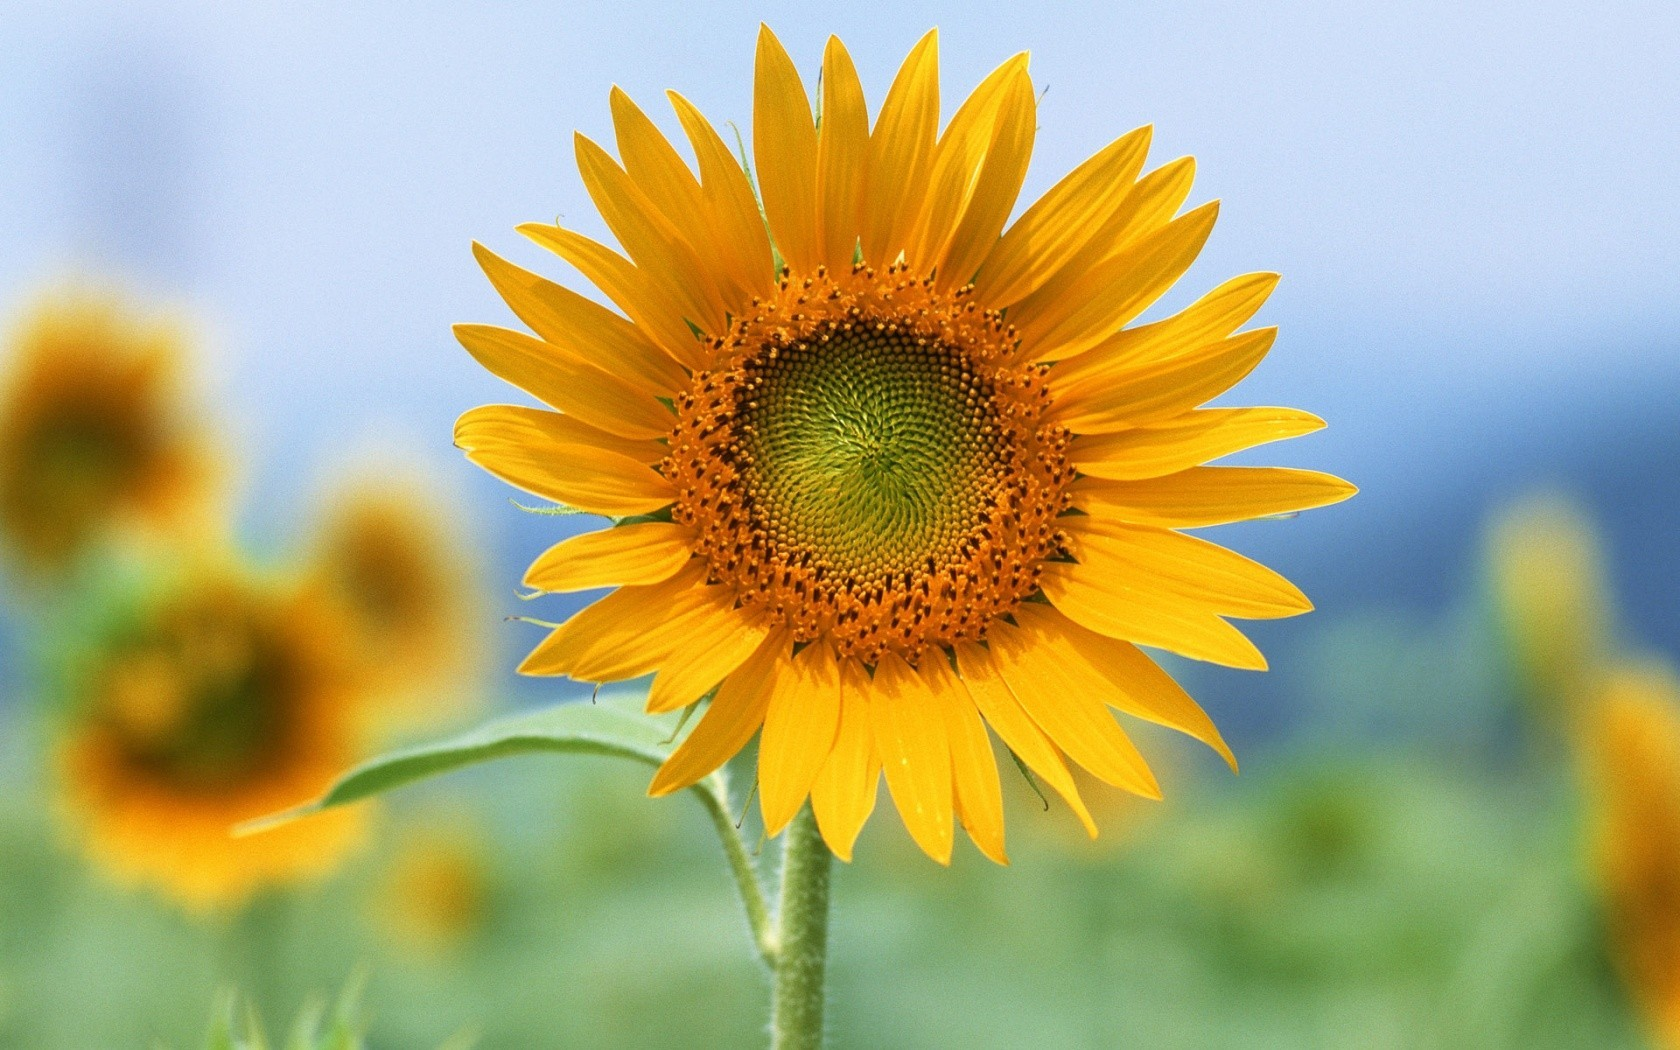 Flowers Sunflowers HD Wallpaper